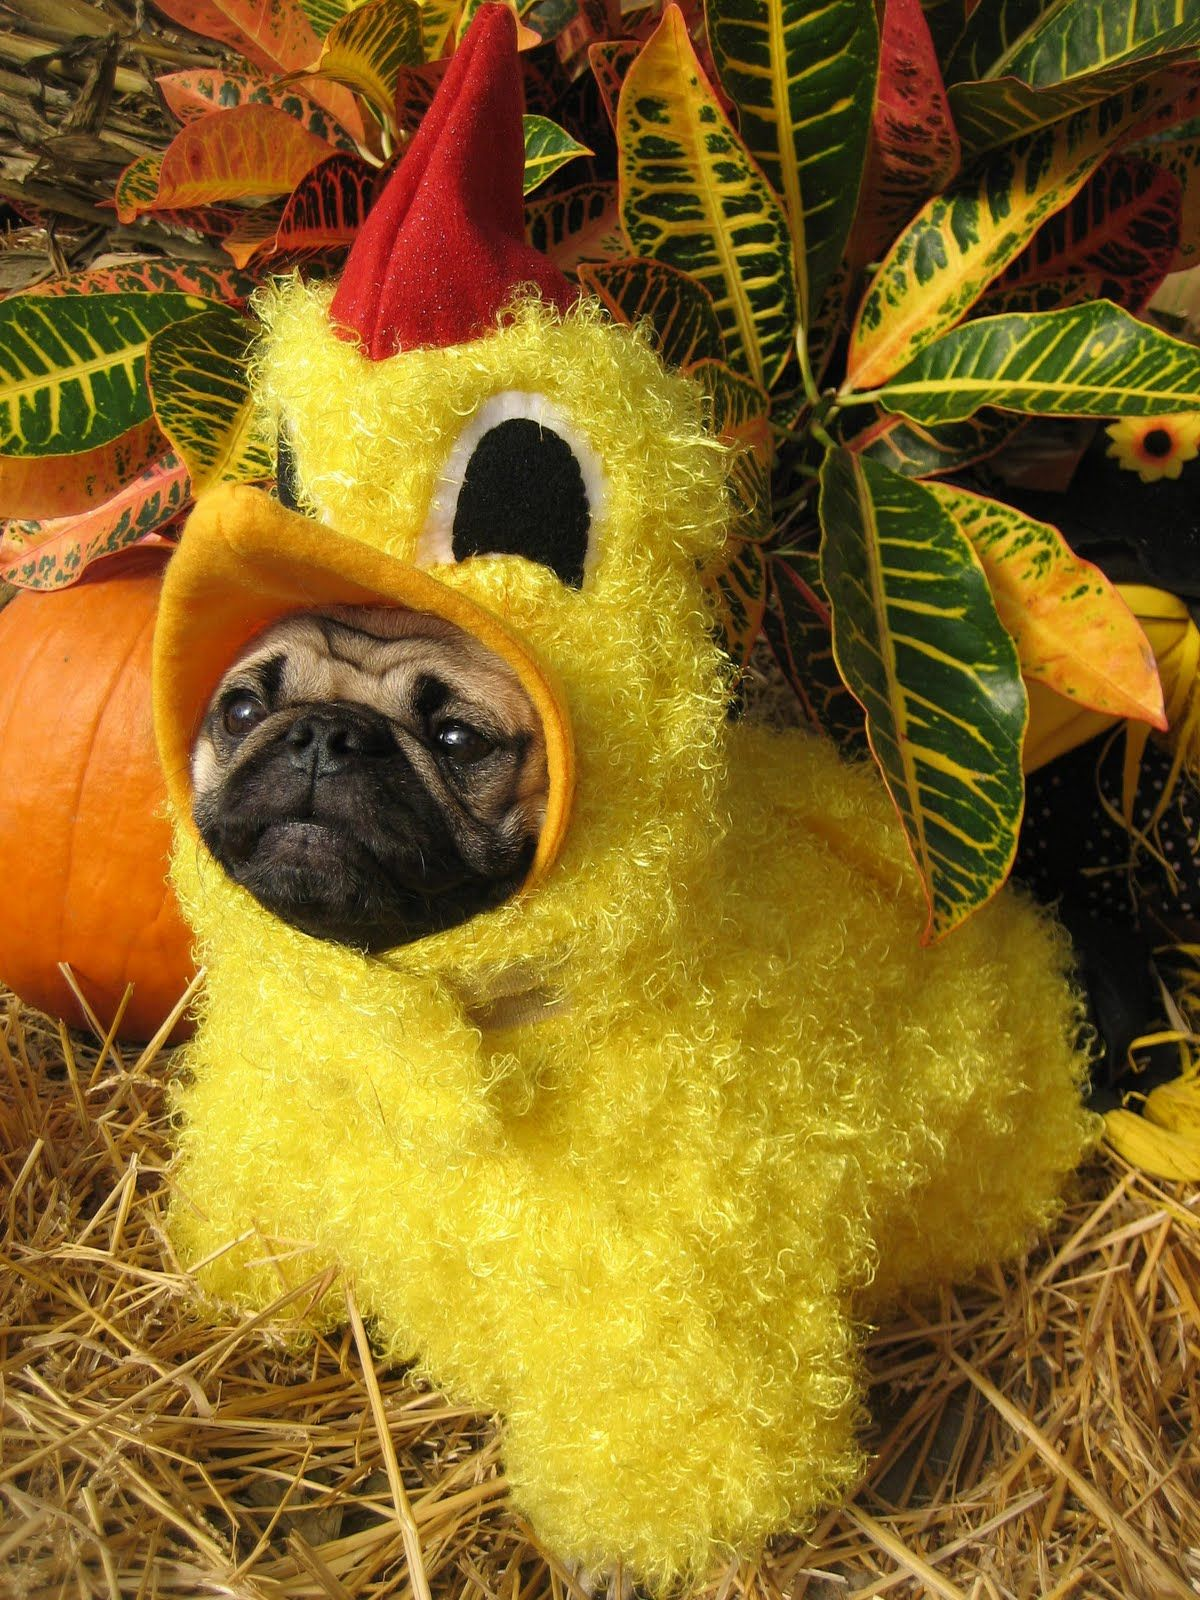 Pug Dog In A Fuzzy Funky Chicken Costume Cute Pugs Pugs Funny Pugs